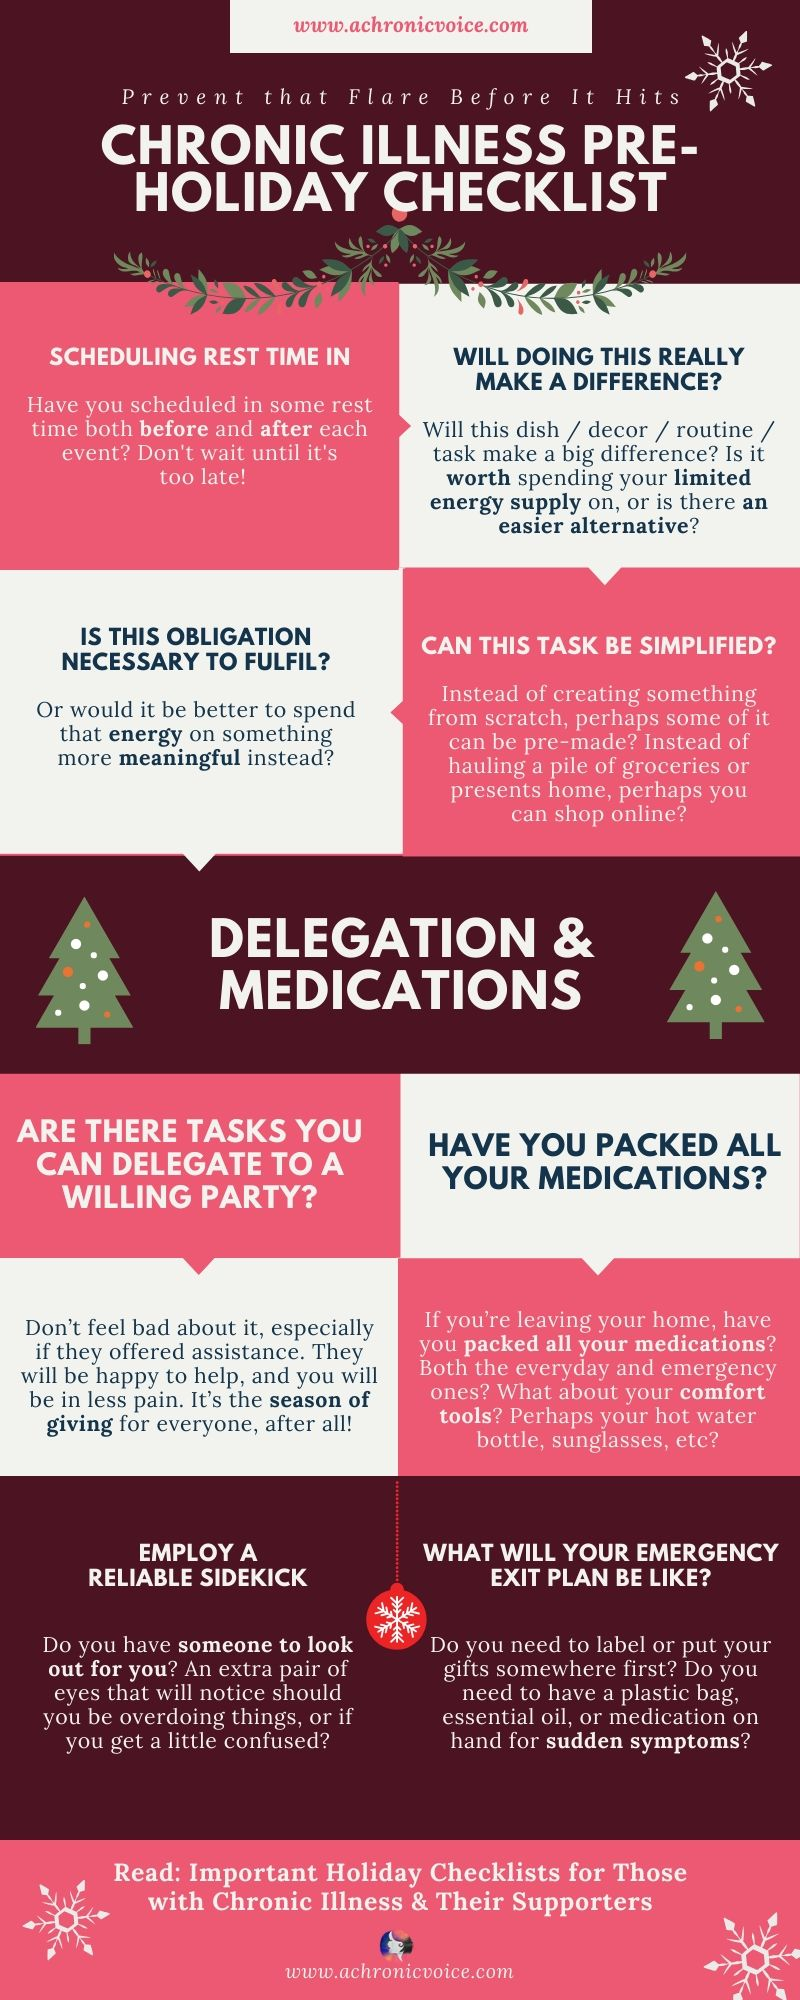 Your Pre-Holiday Self-Care Checklist with Chronic Illnesses Infographic